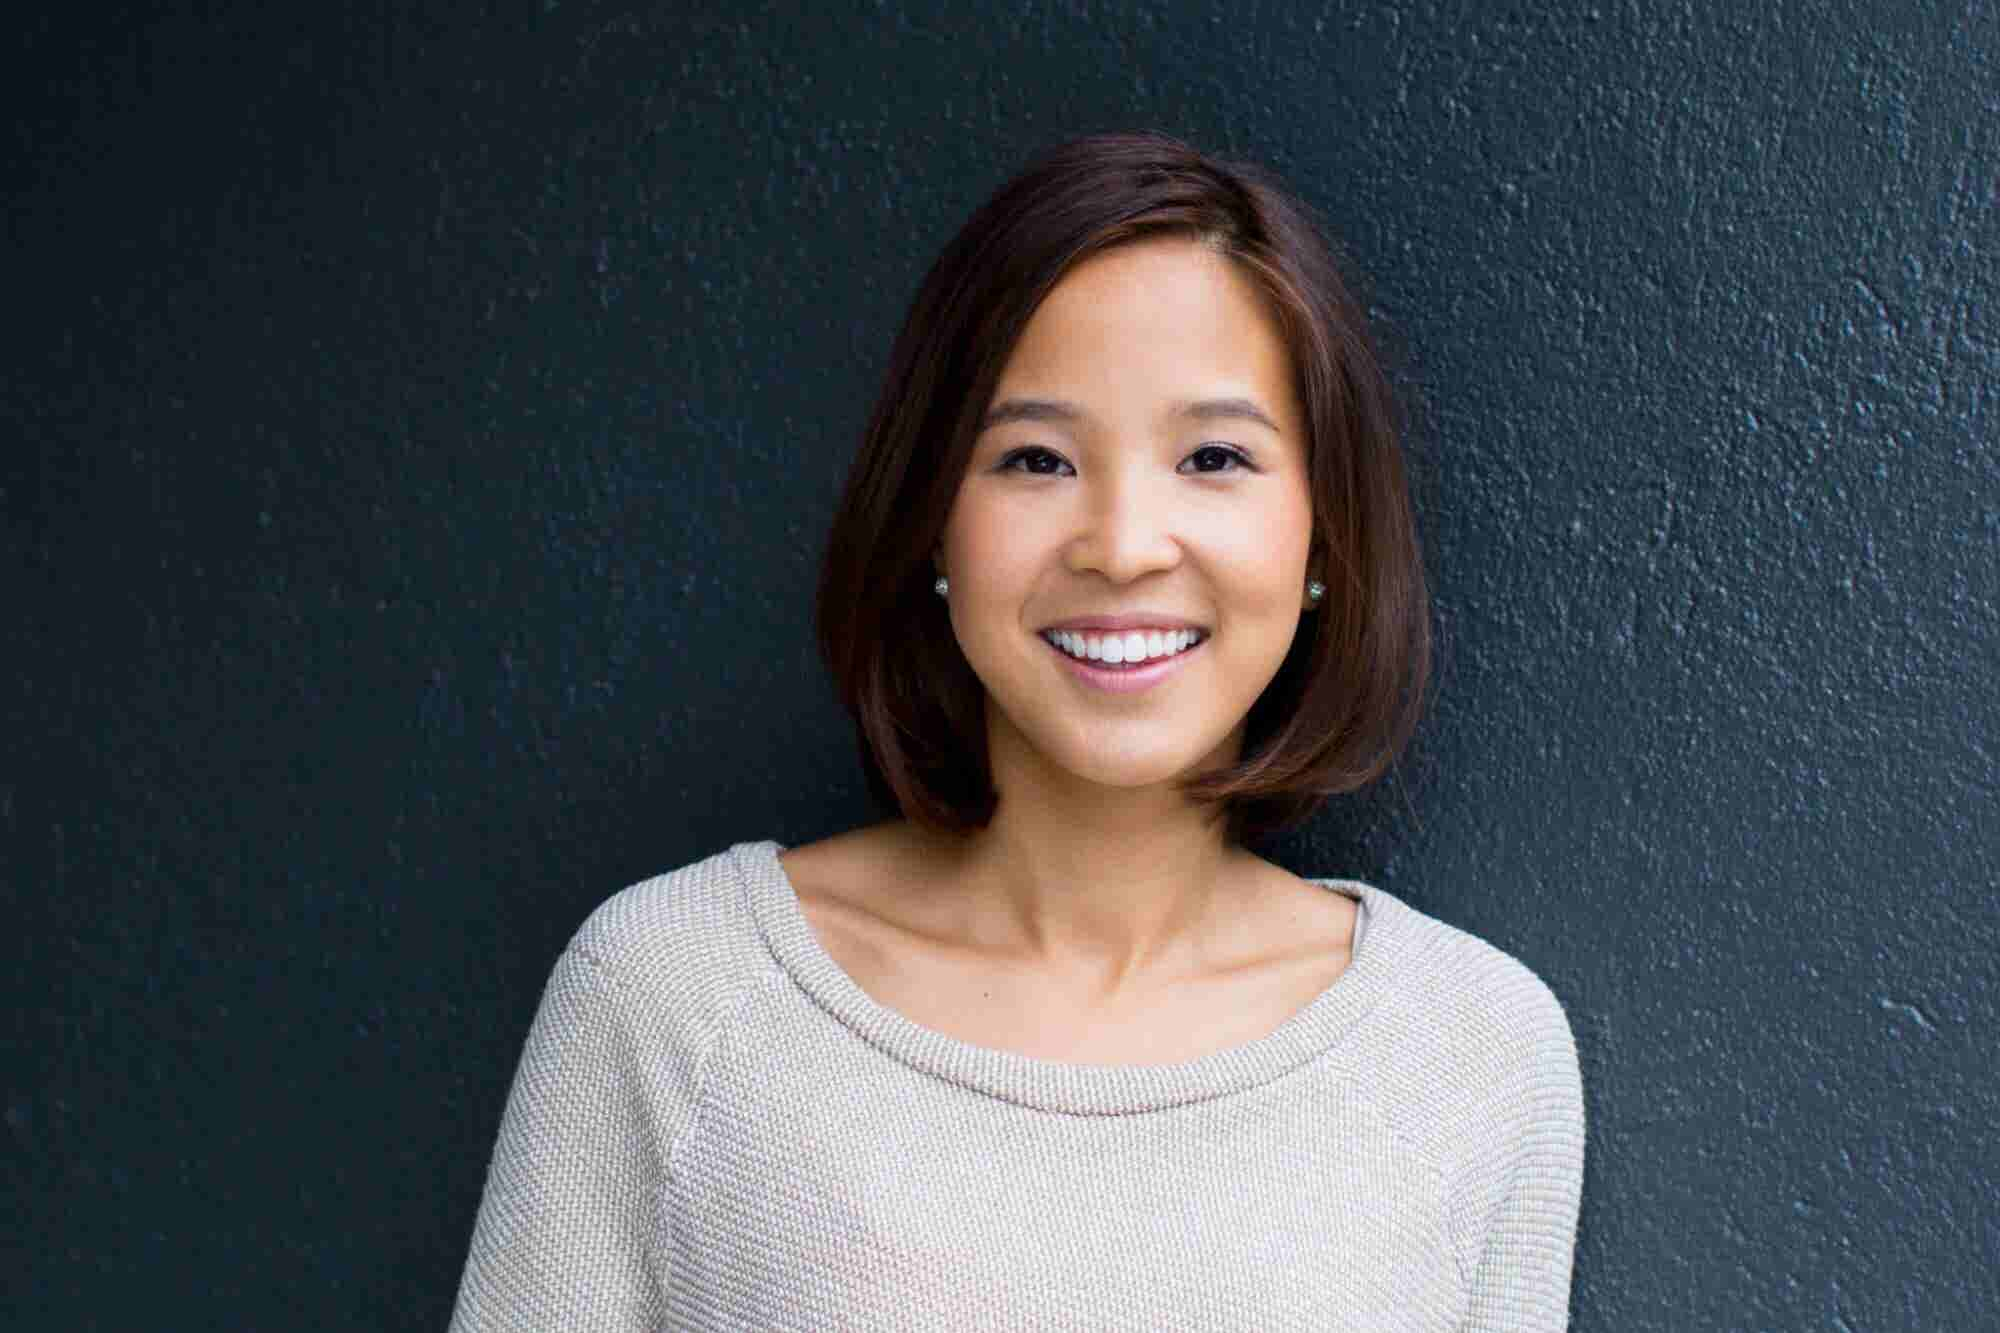 The Founder of Meditation App Simple Habit Shares How She Finds Joy Amid Stress